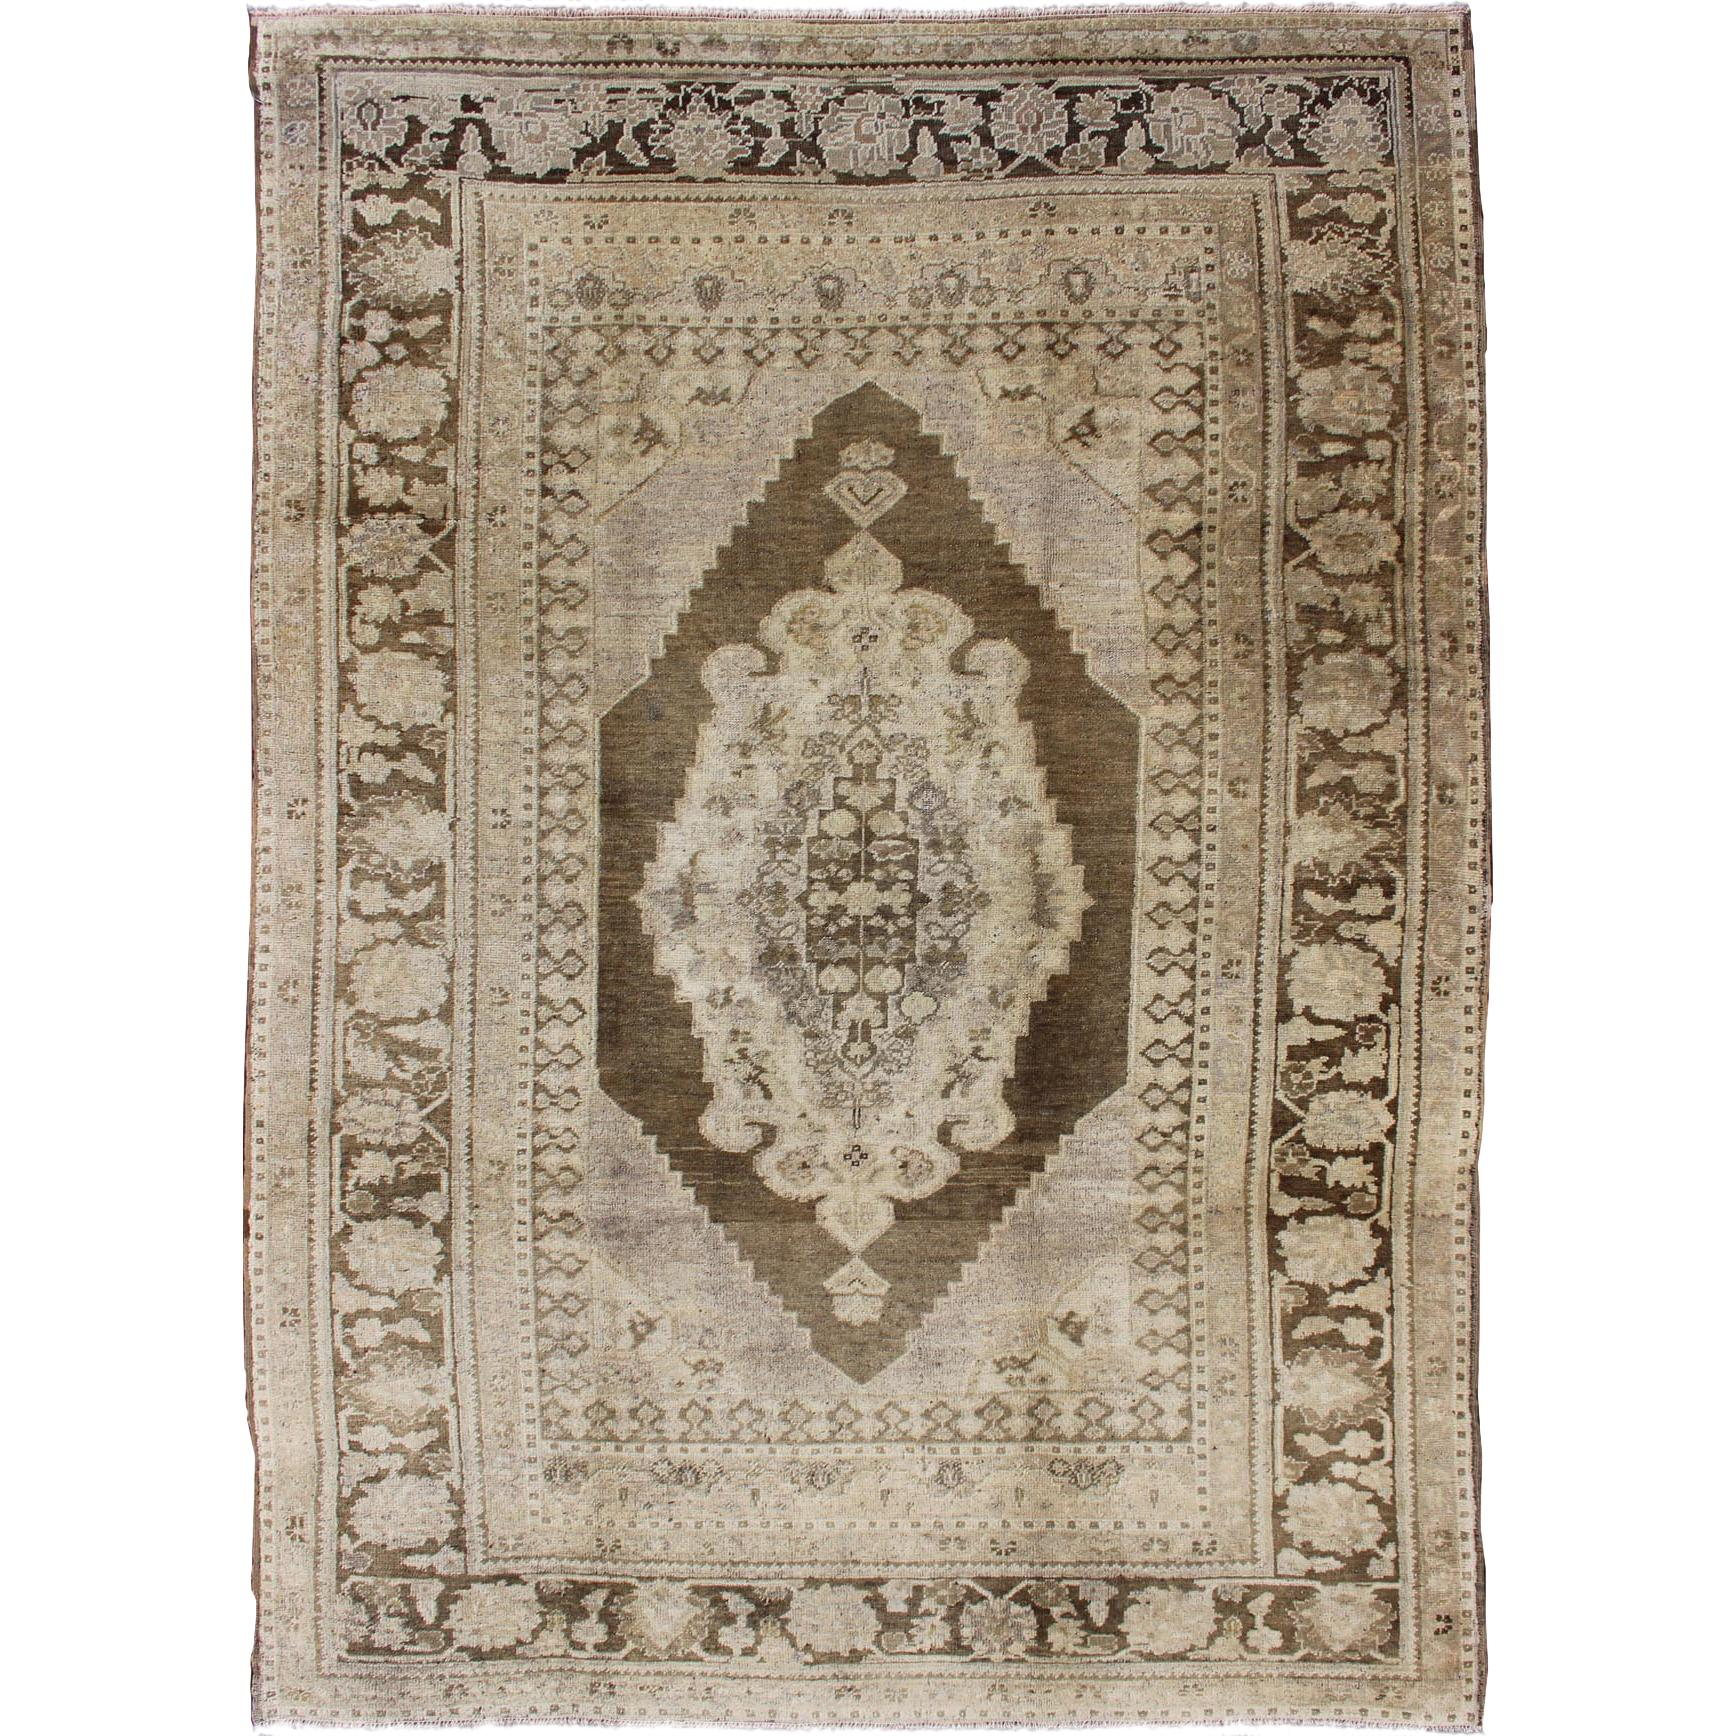 Vintage Turkish Oushak Rug in Brown/Green, Taupe and Neutral Colors